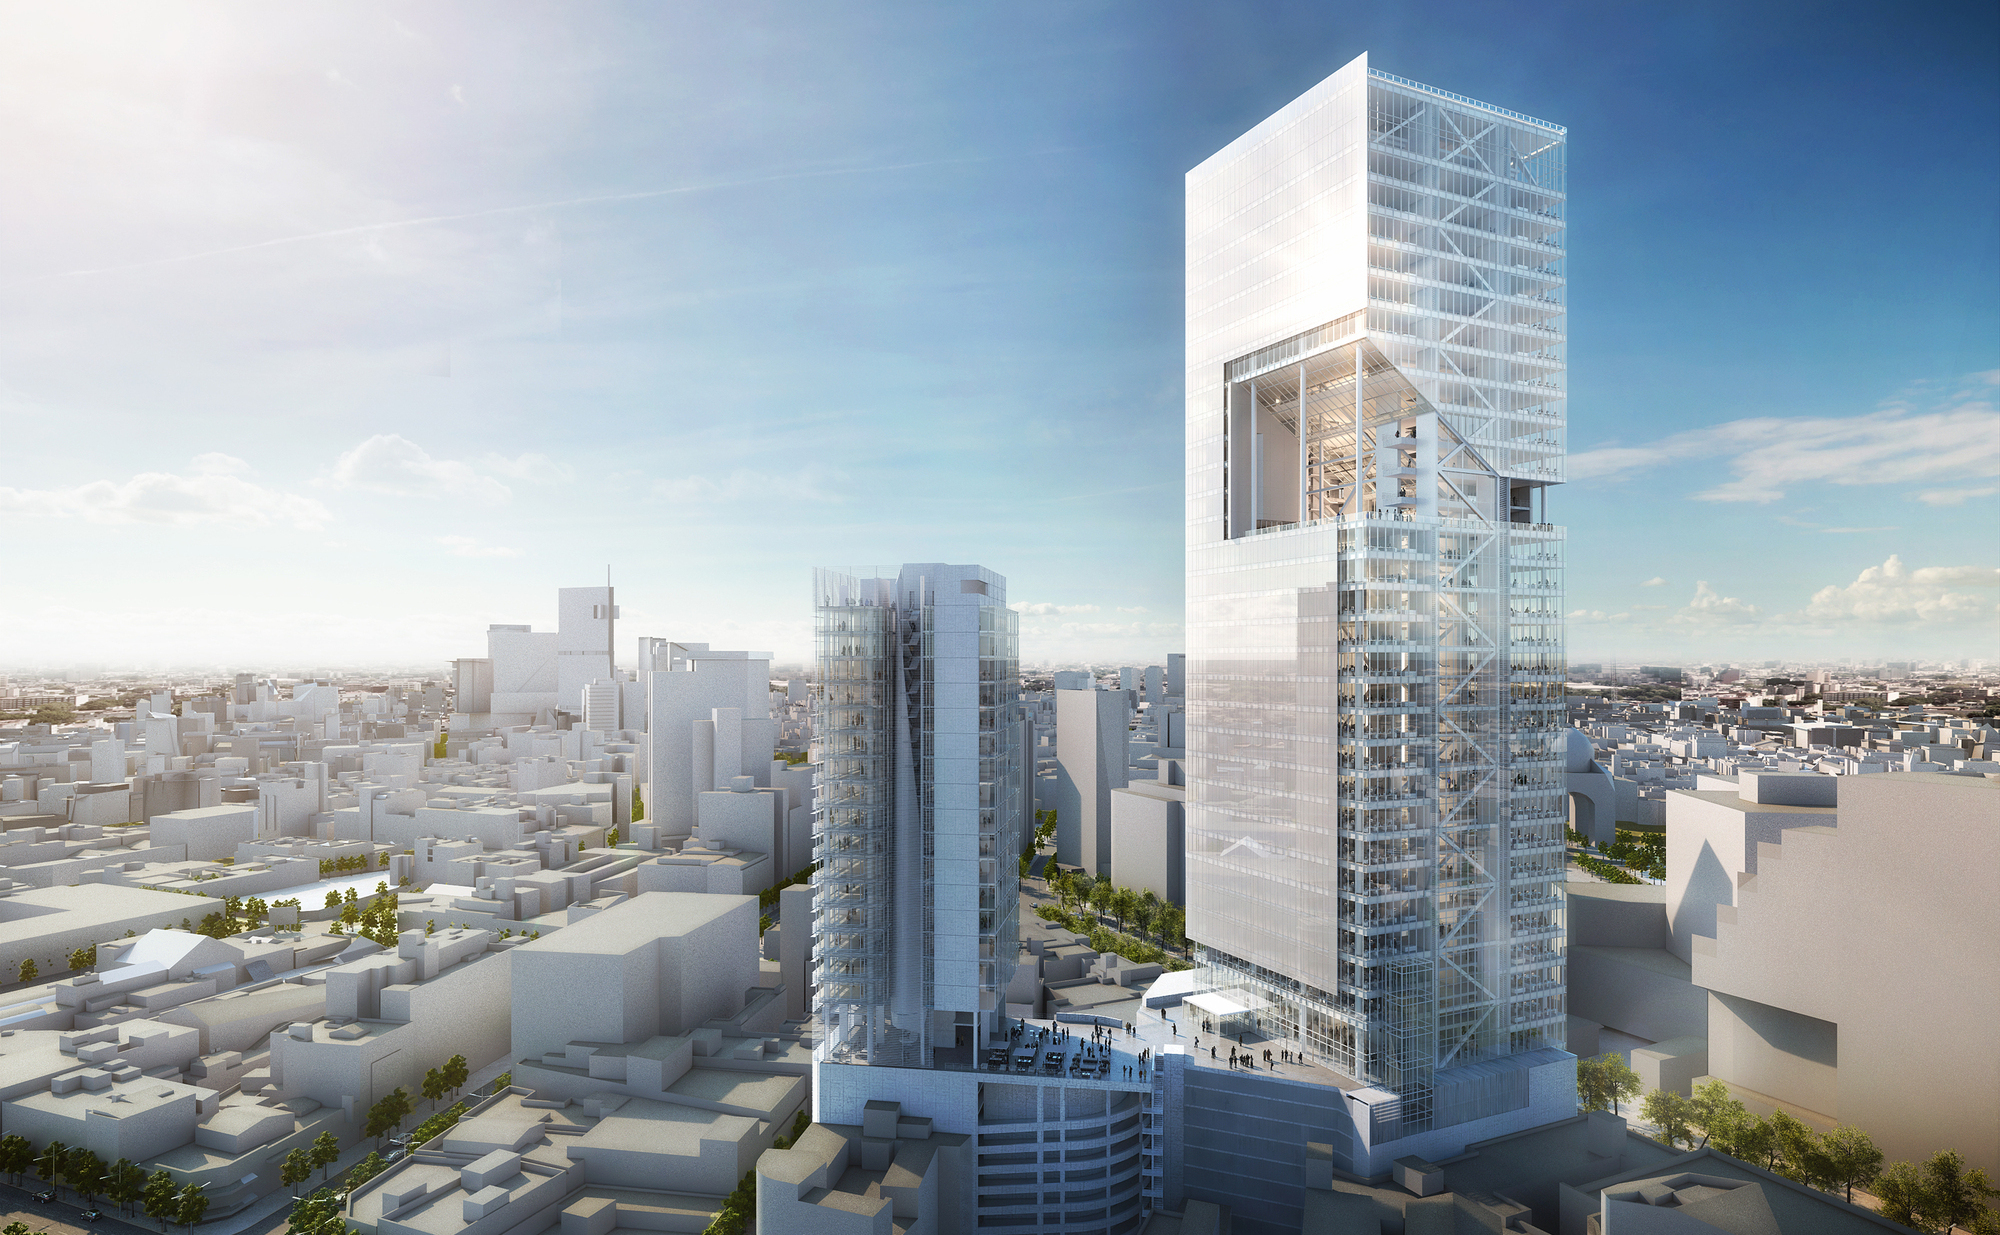 52e7dd94e8e44e776800002d_richard-meier-designs-180-meter-tower-development-in-mexico_rmp_reforma_towers_aerial_view